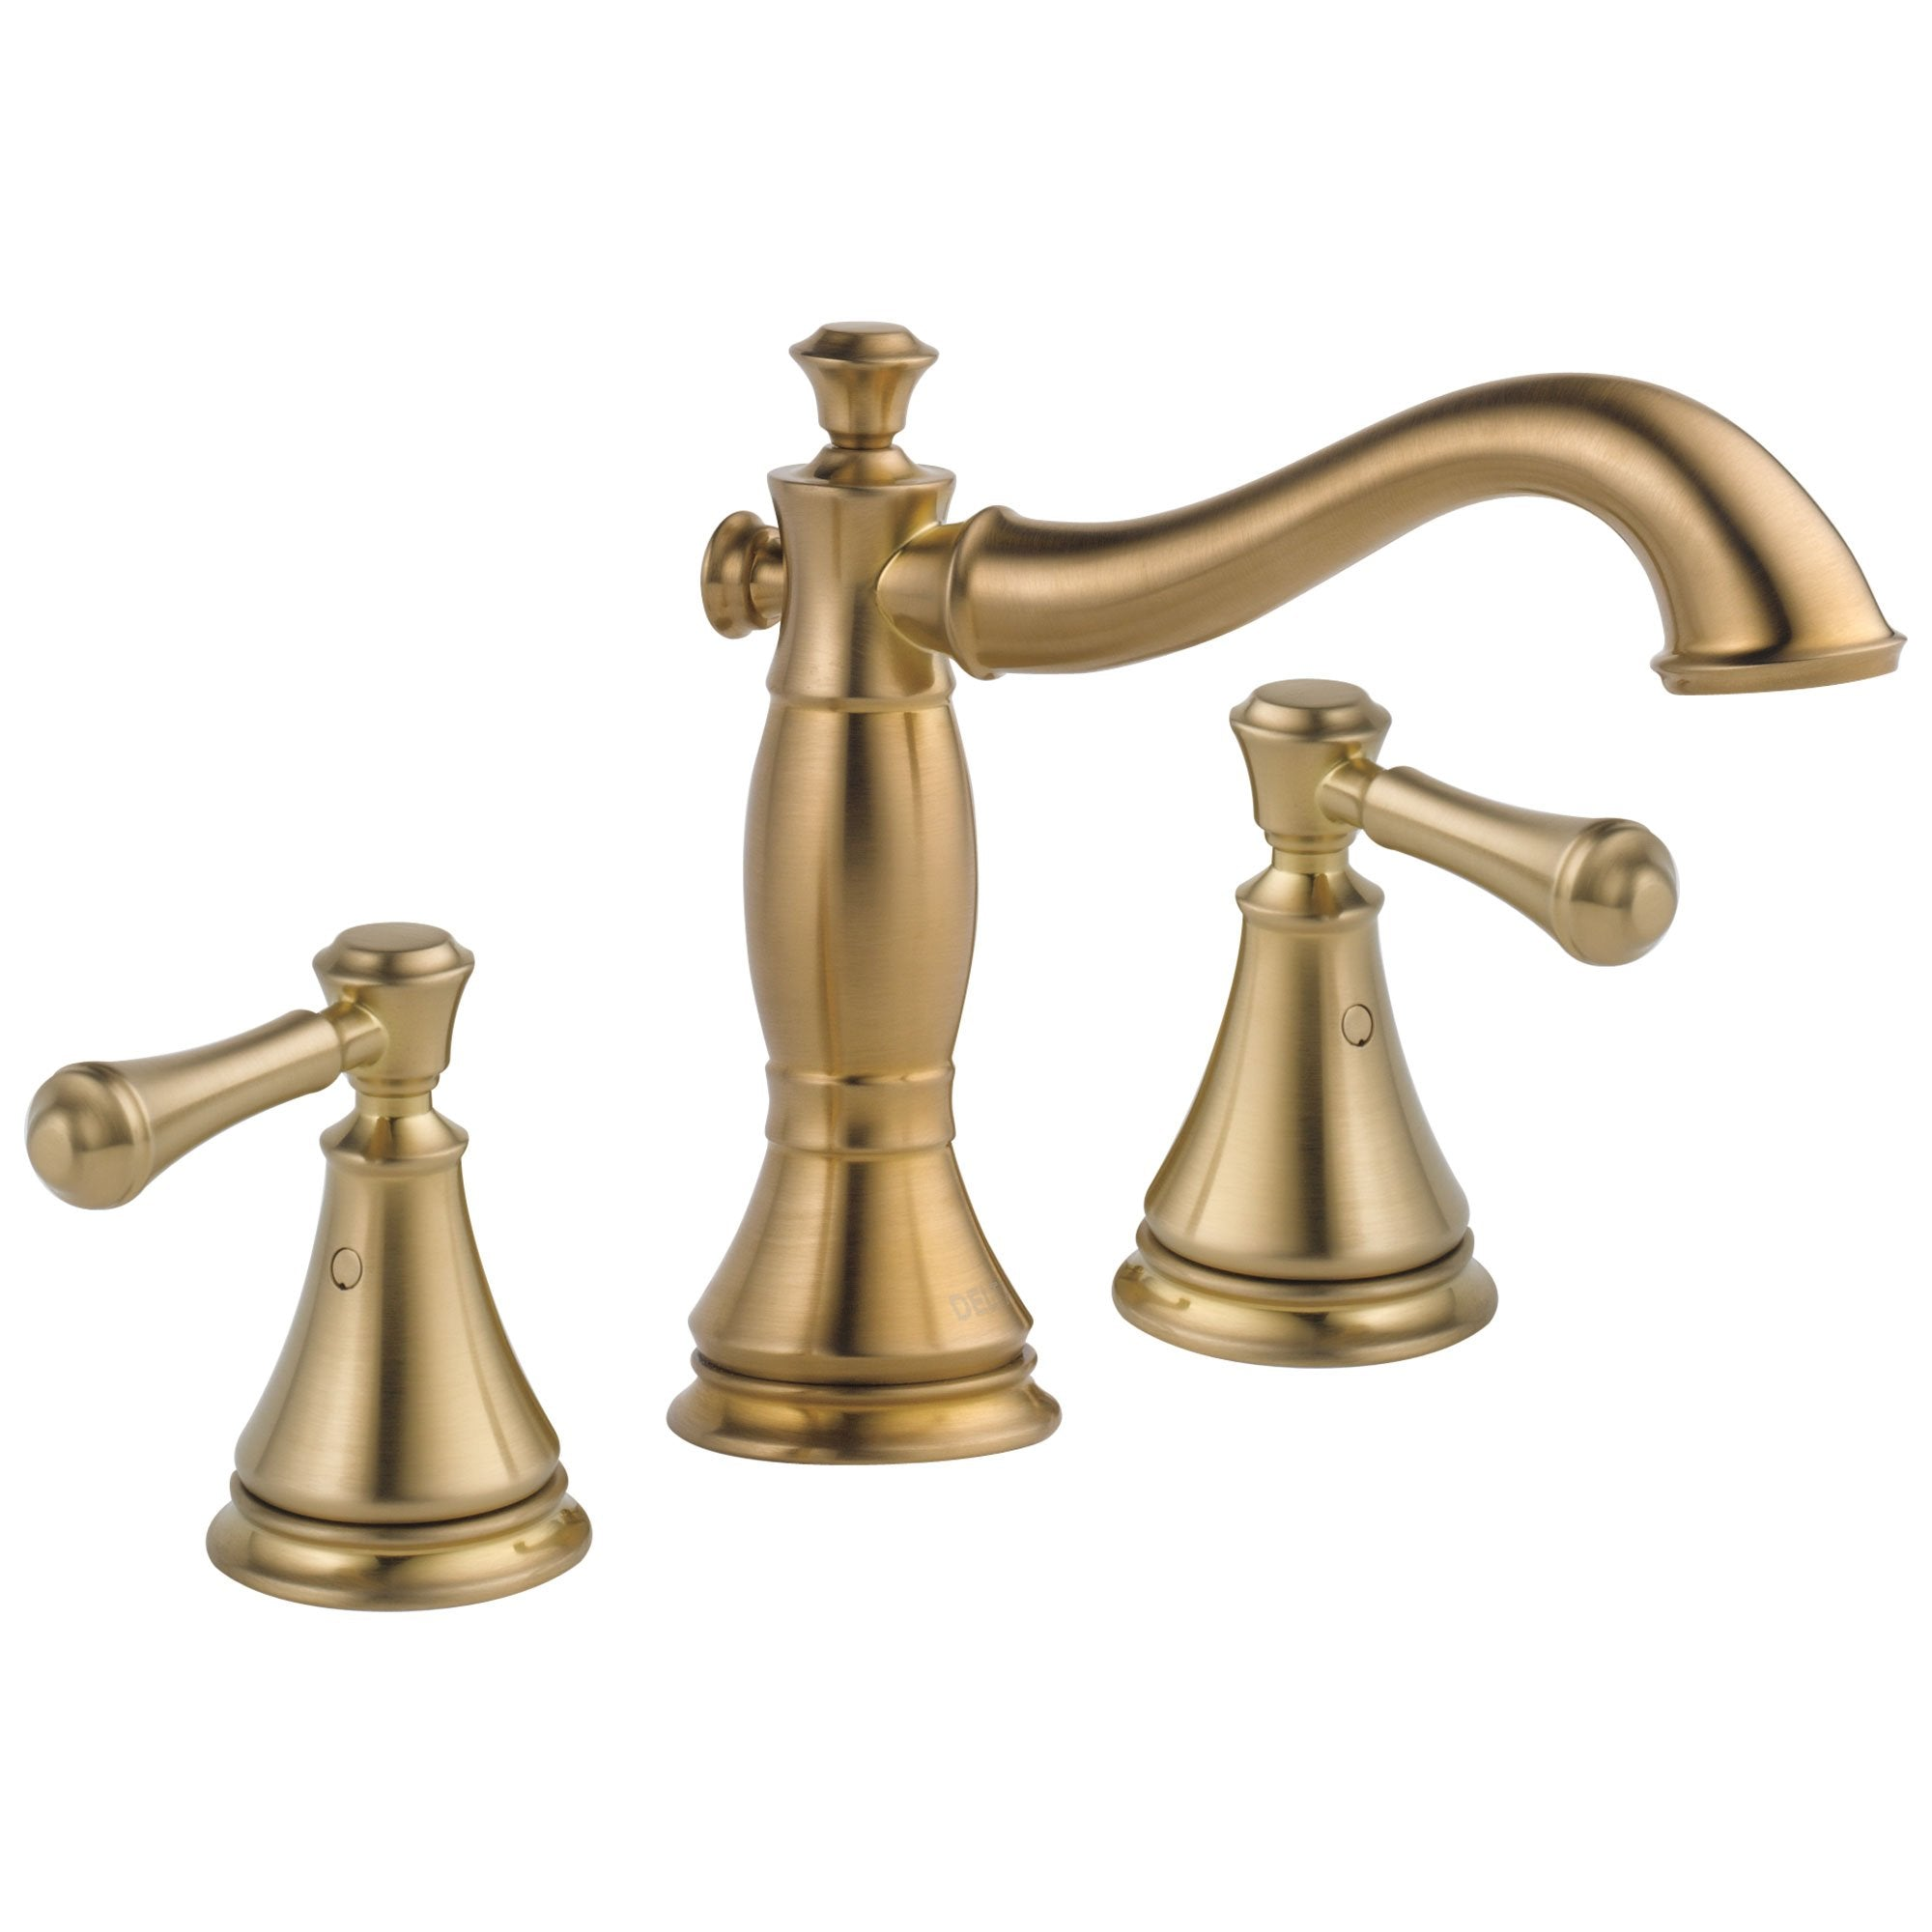 Delta Cassidy Collection Champagne Bronze Widespread Lavatory Bathroom Sink Faucet INCLUDES Two Lever Handles and Metal Pop-Up Drain D1784V